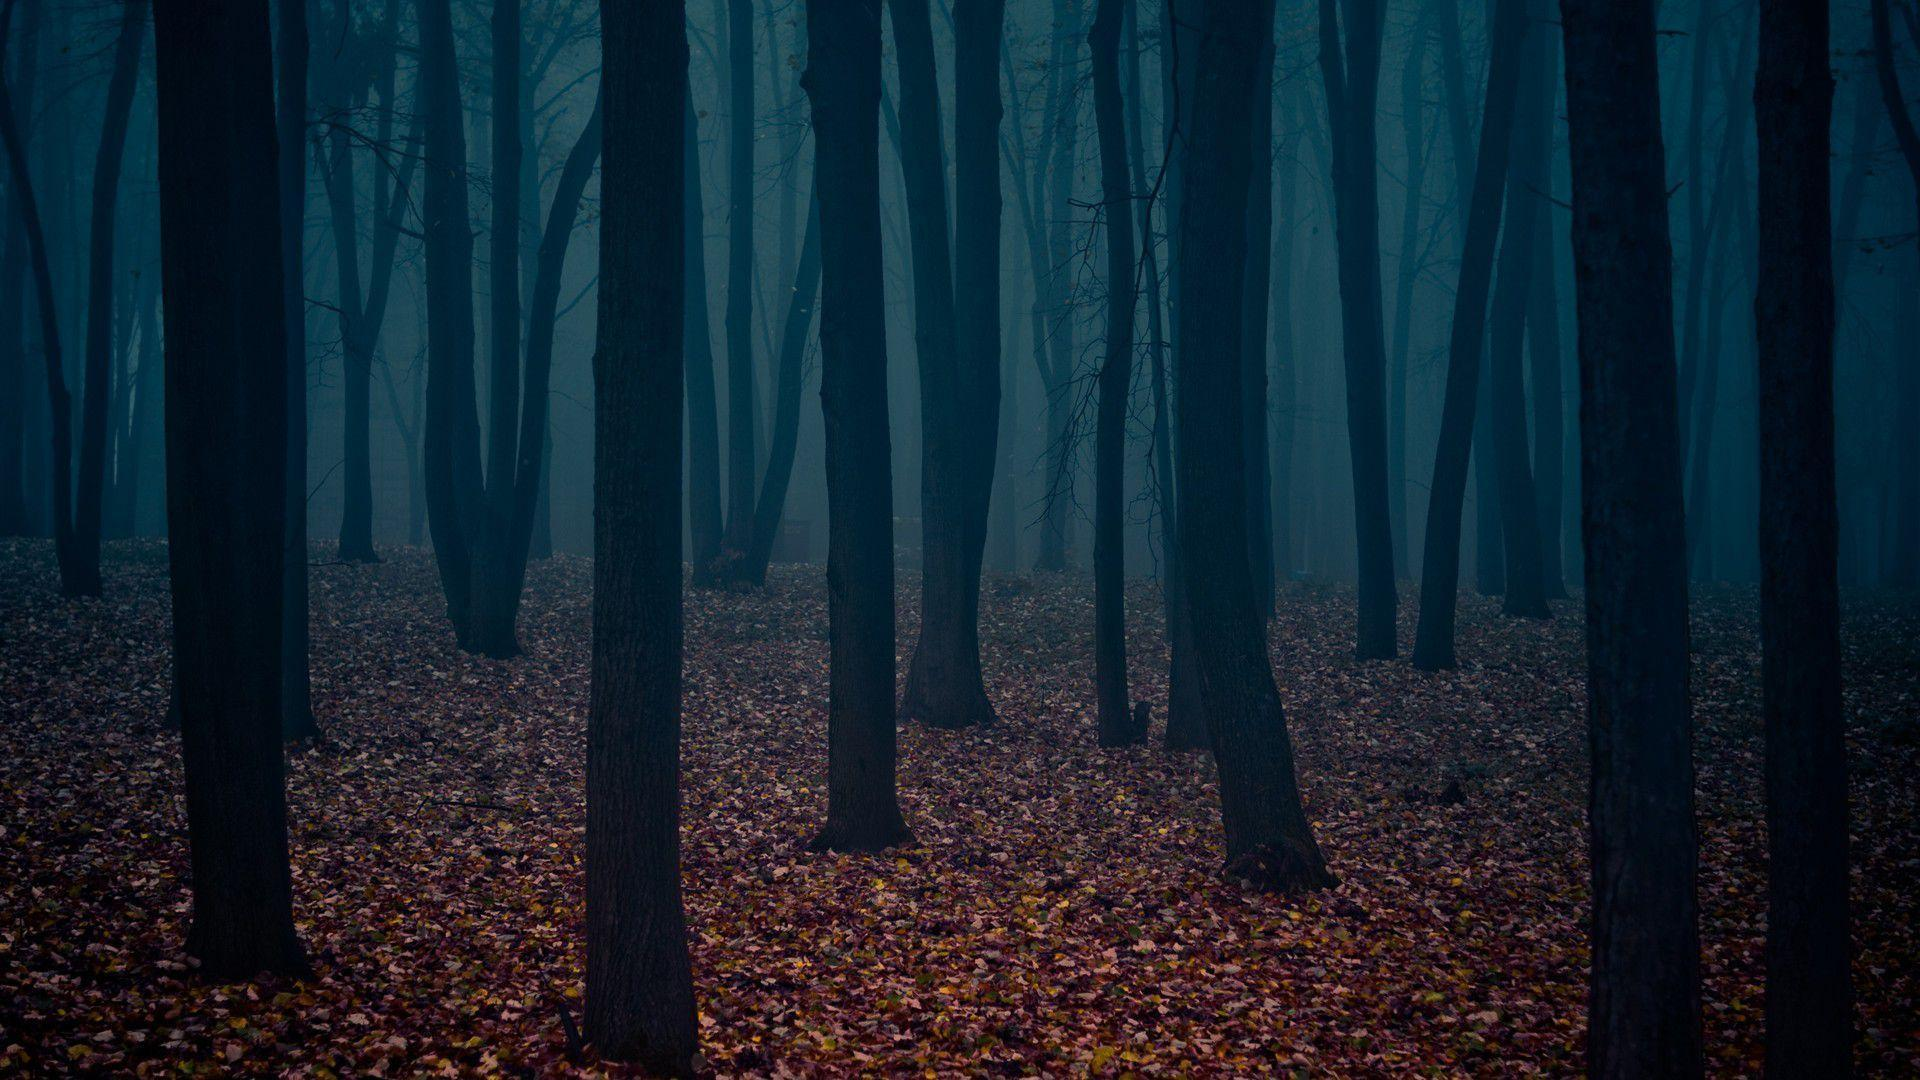 dark places forest trees - photo #22